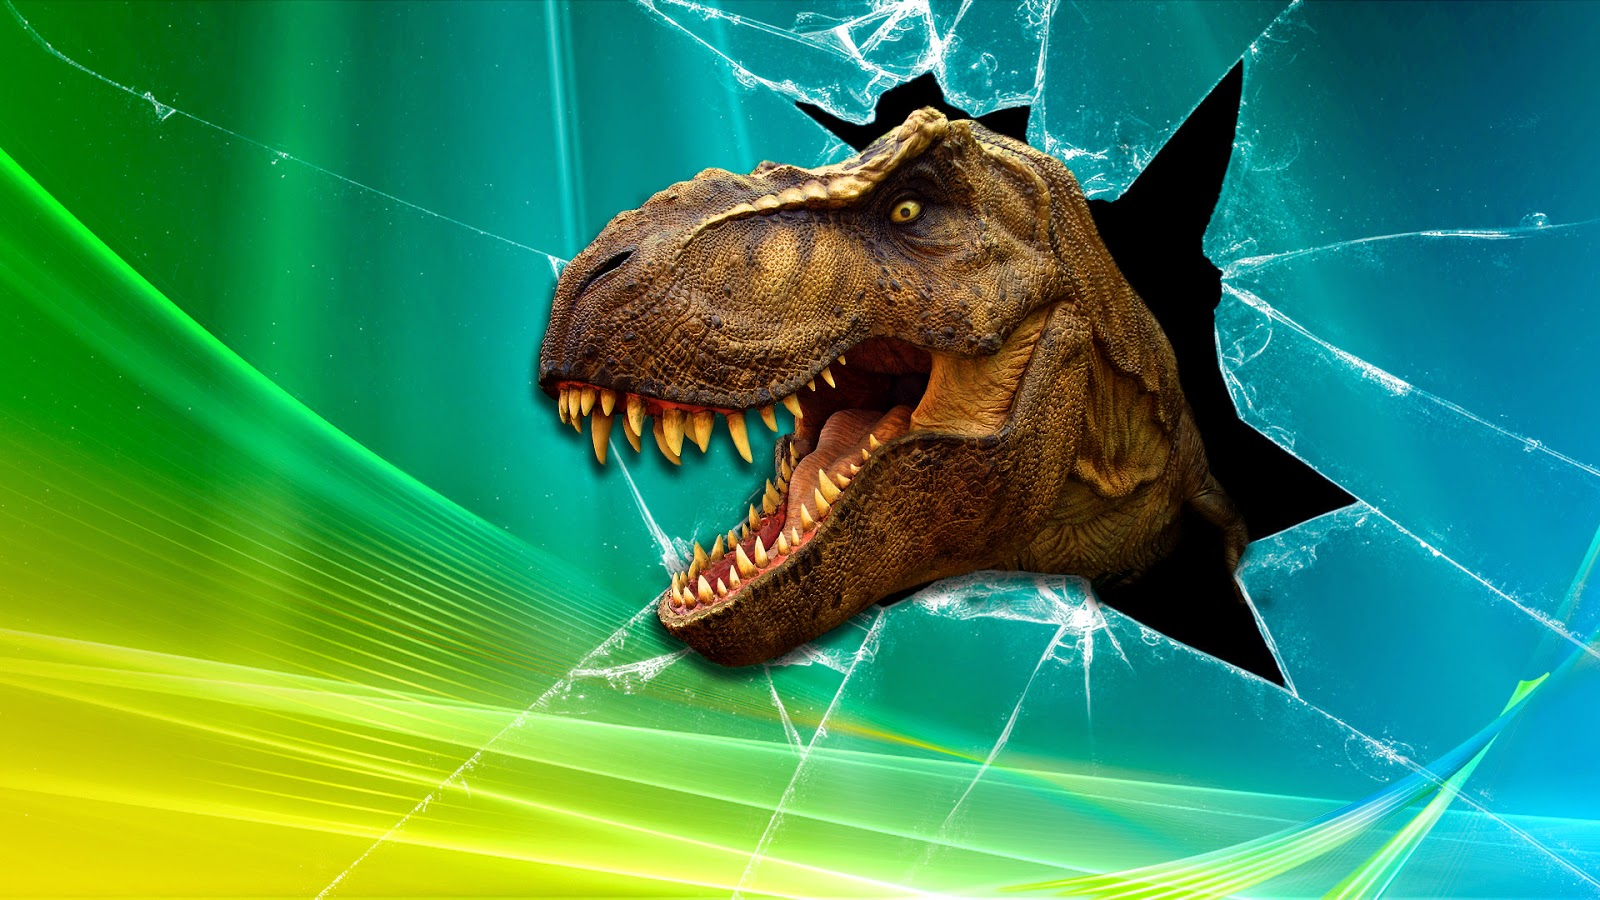 T-Rex bursting through a monitor screen